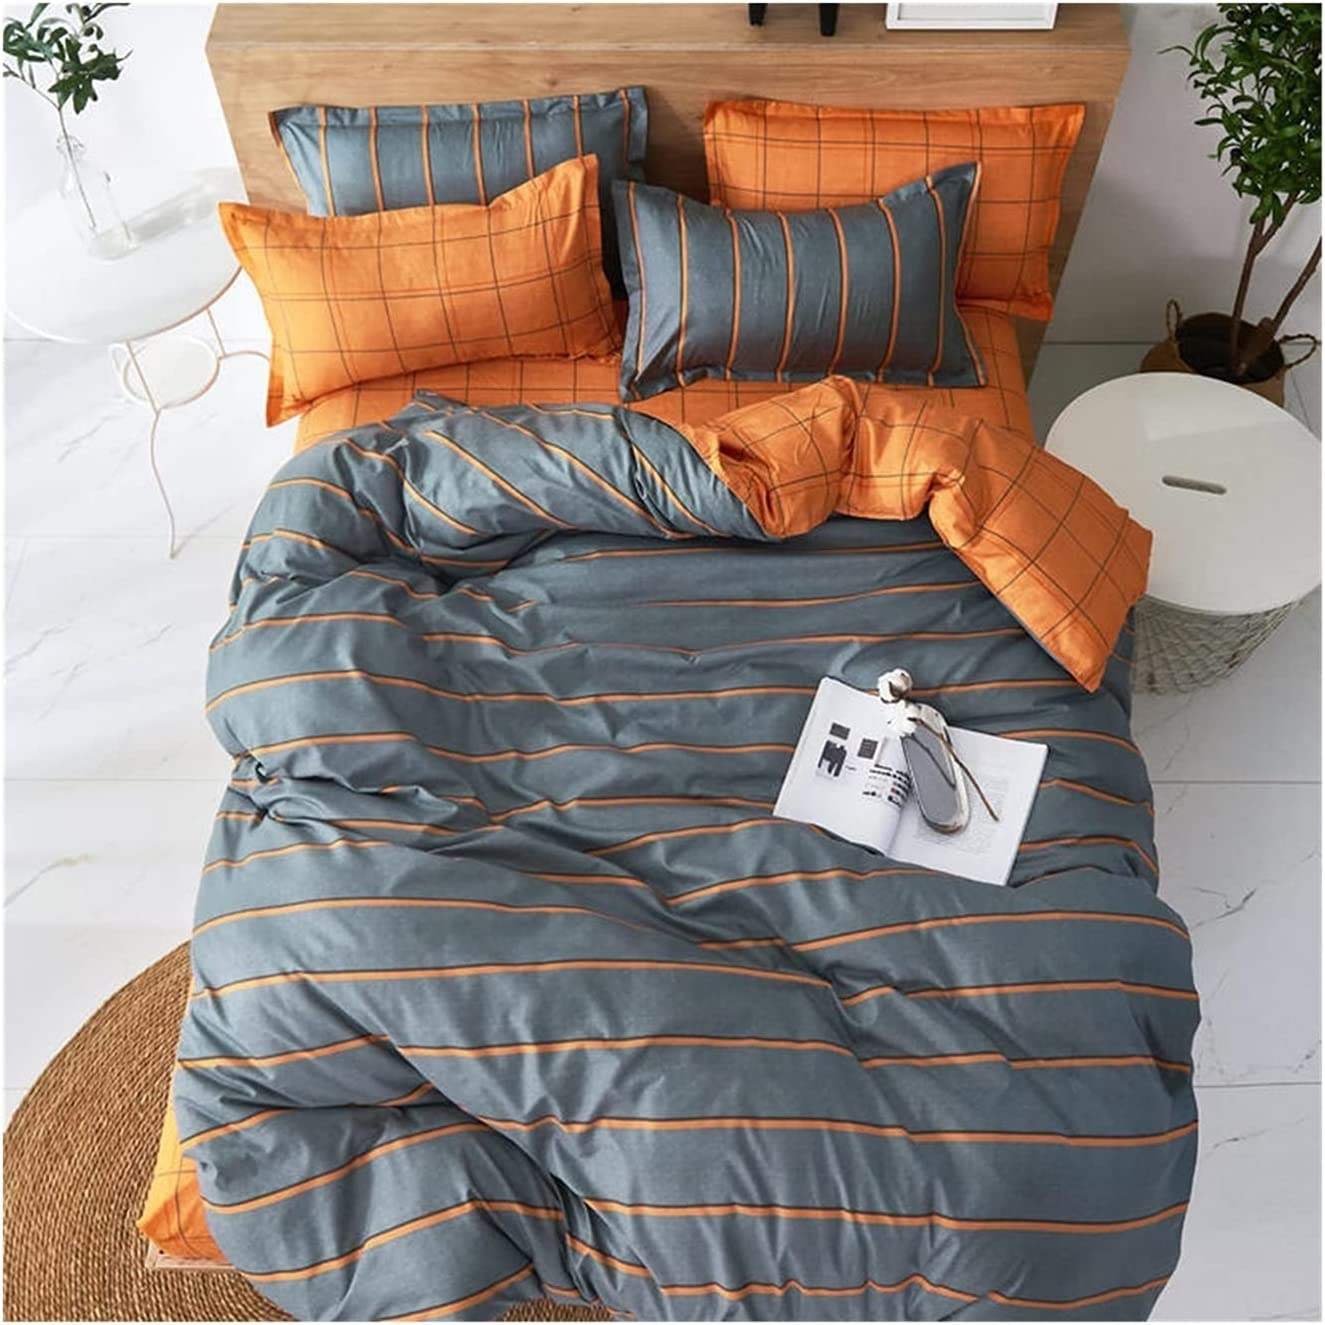 2021 spring and summer new LSDJ QMDSH Home Textile Gorgeous Girl Bedding Cover Duvet Set Pink Peach